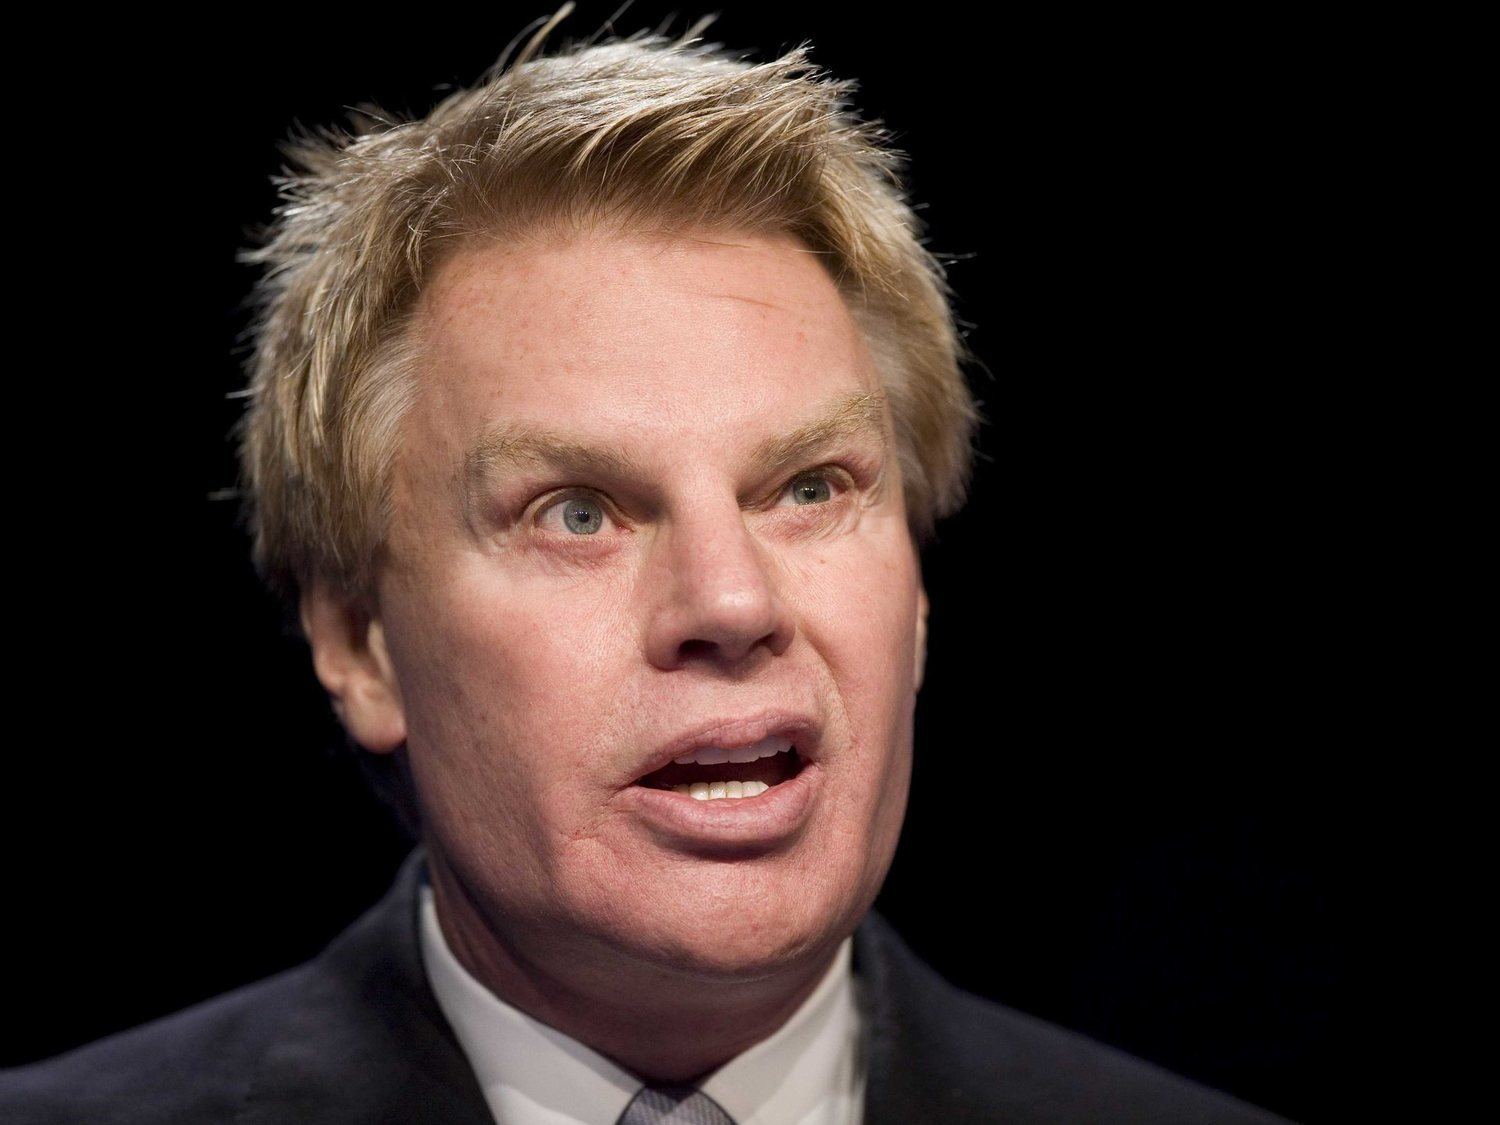 Mike Jeffries, CEO de Abercrombie & Fitch desde su refundación hasta 2014